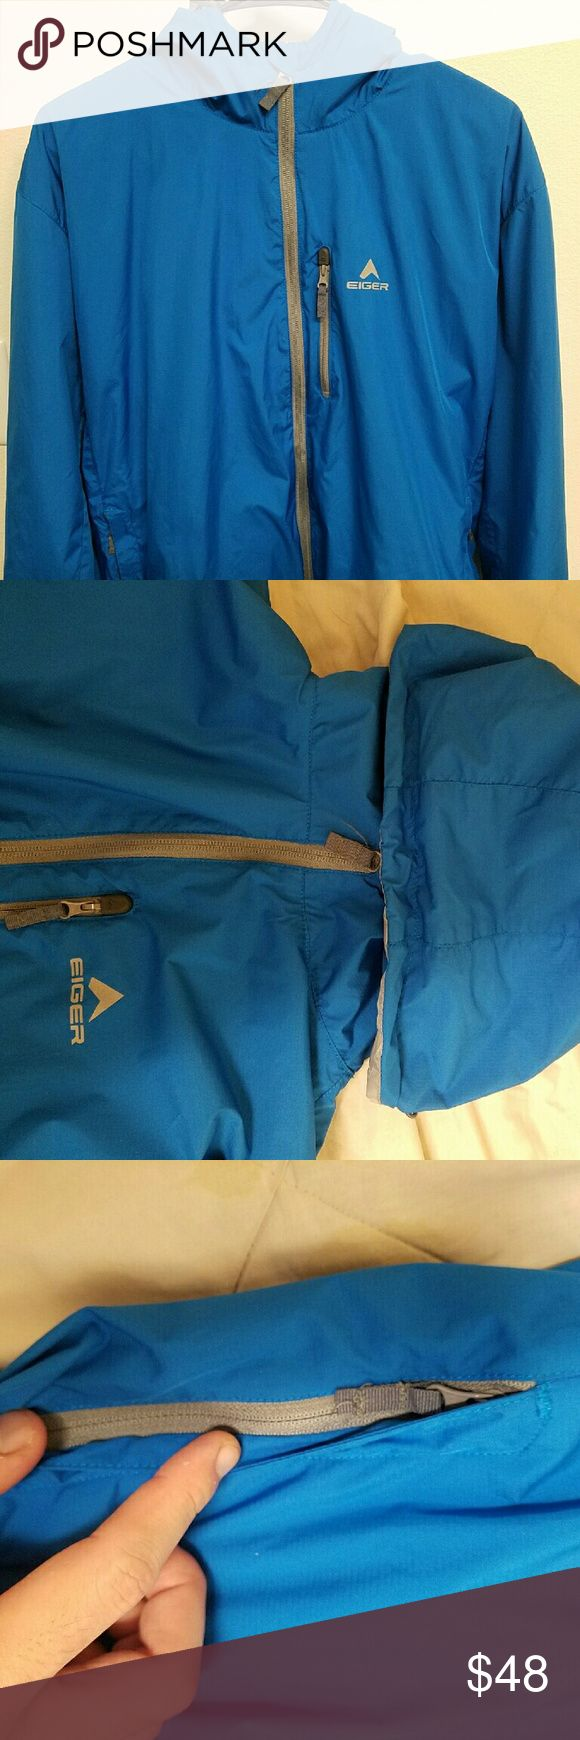 (Price reduced today) Running jacket Hardly worn. Color: striking blue. 3 zip pockets (1 chest, 2 sides) Other inside pocket Super but strong lightweight. Hooded. Great for hiking or camping or running. Gray colored Full zipper detail. Original brand: eiger   Size women L or Men M unisex Comparable product:  the north face nike element adidas superstar track  reebok Patagonia Michael Kors superdry columbia calvin klein abercrombie Vineyard vines North Face Jackets & Coats